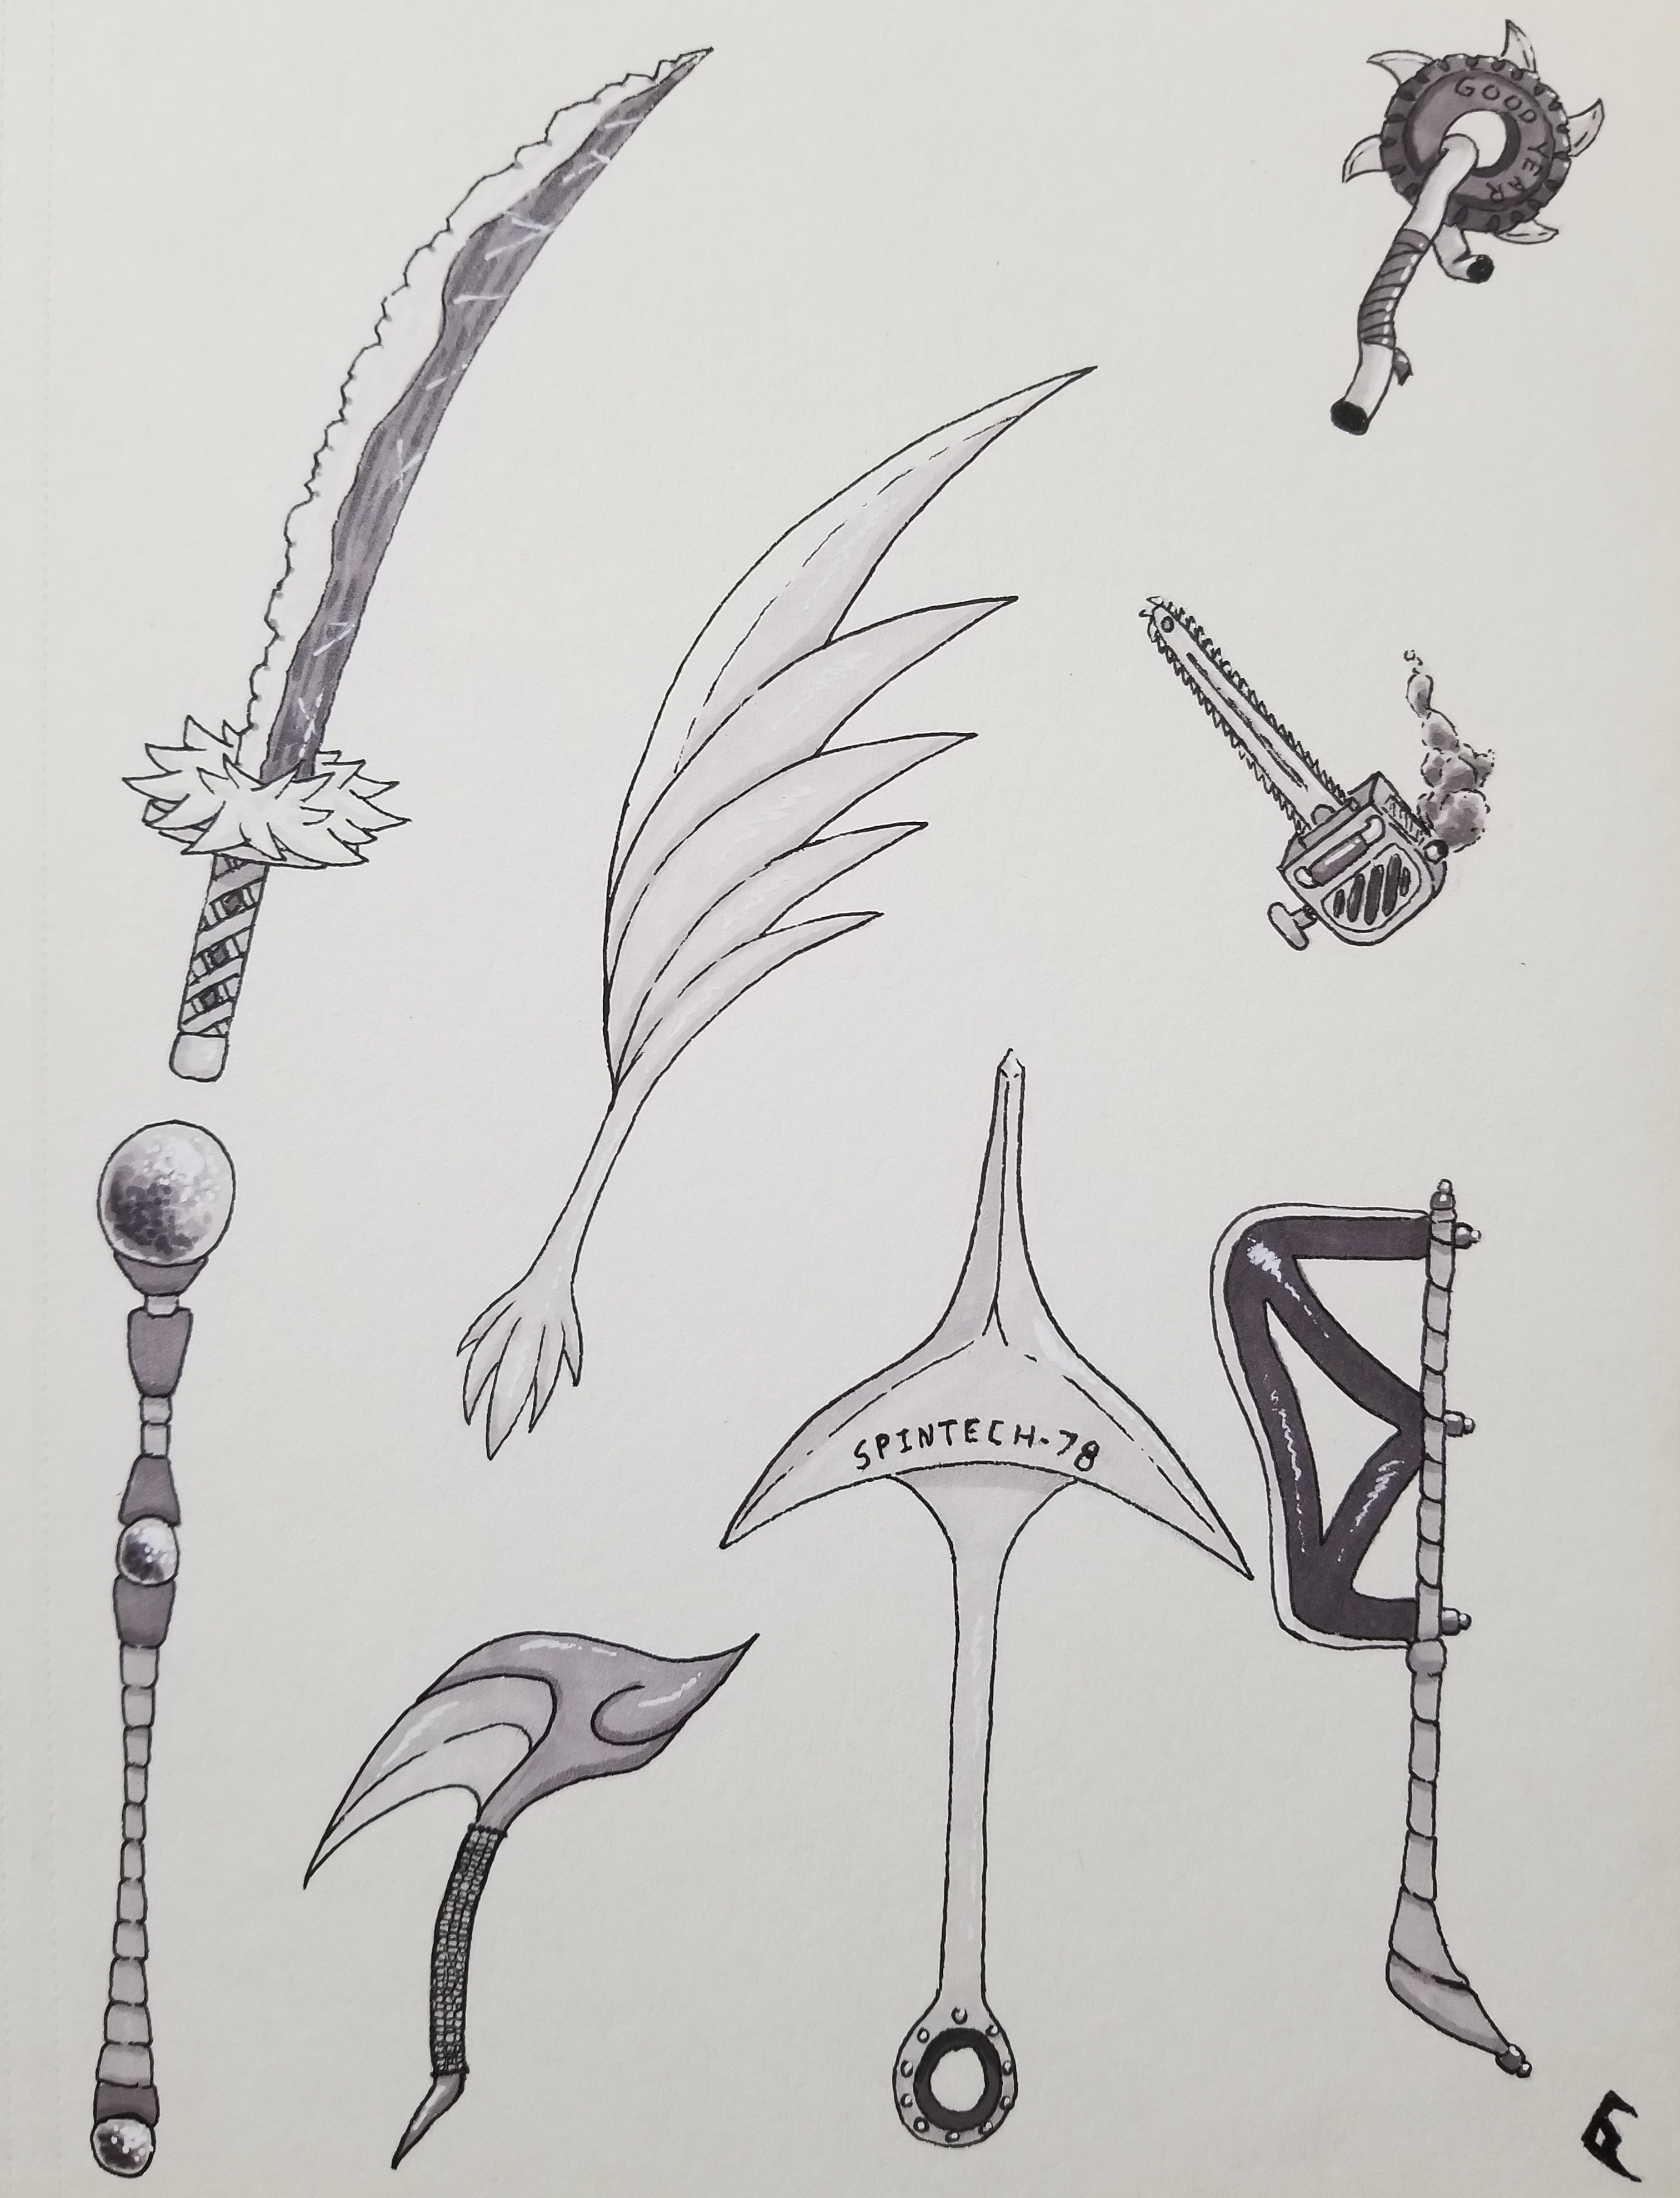 Inktober Day 15: Weapons